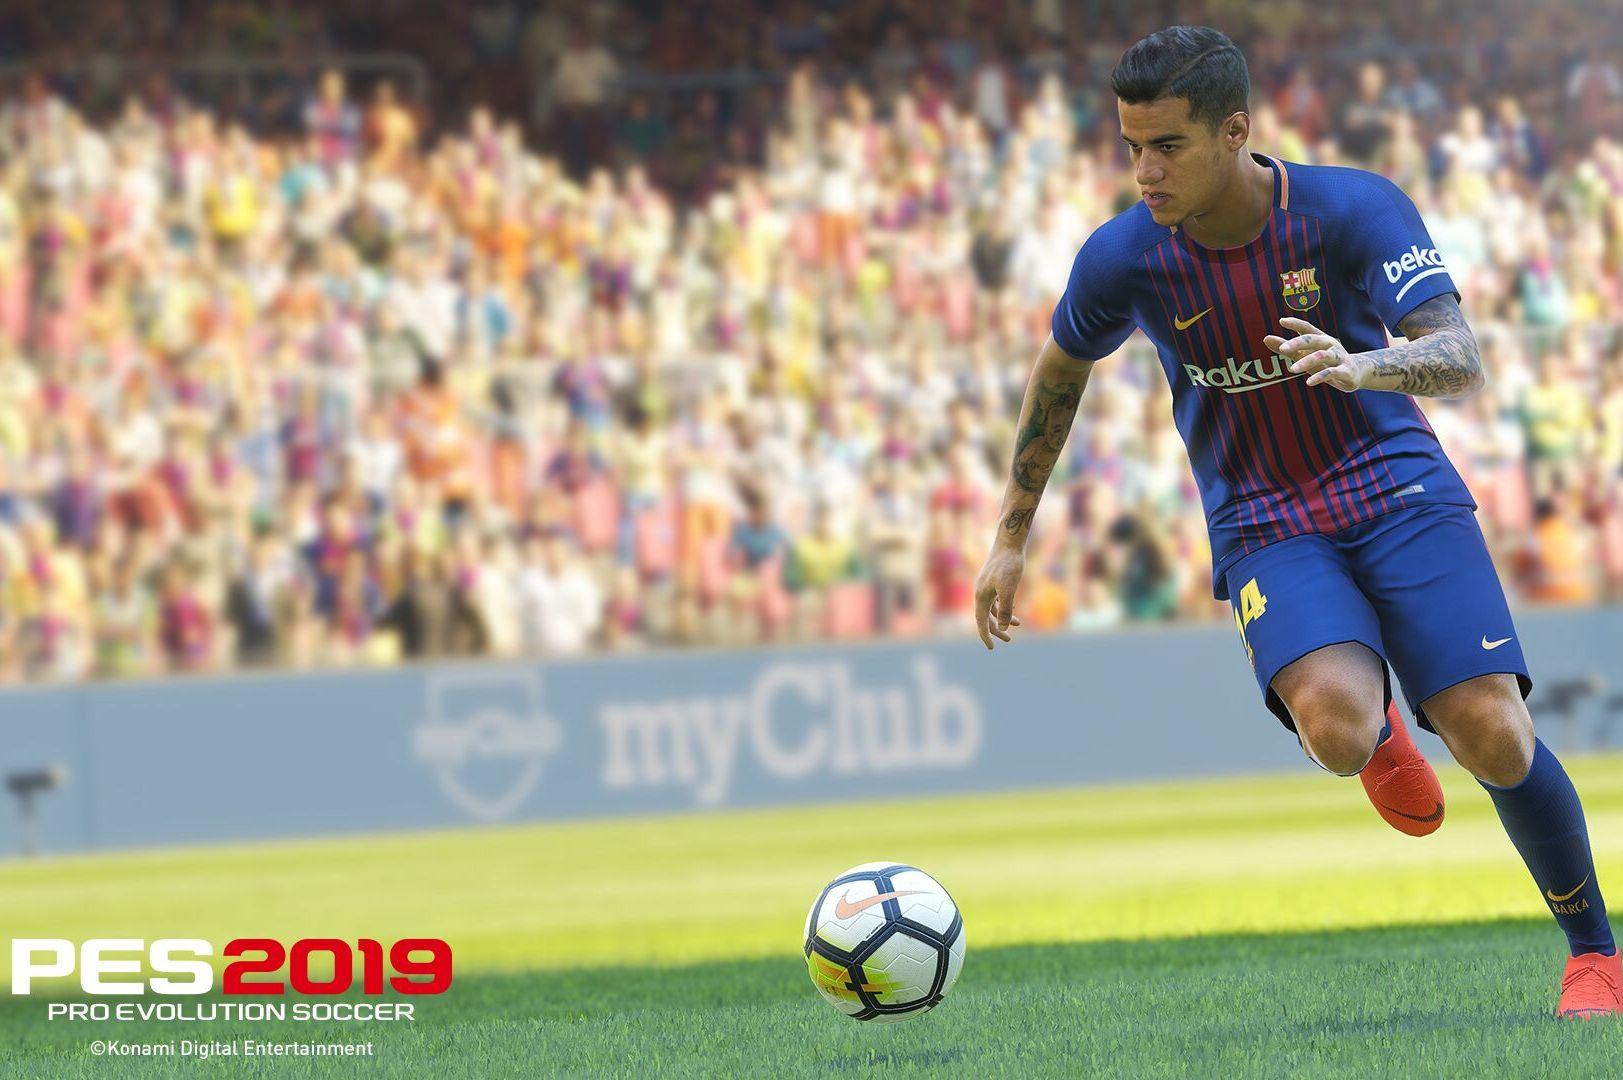 PES 2019 Review: A Year of Promise and Problems in the